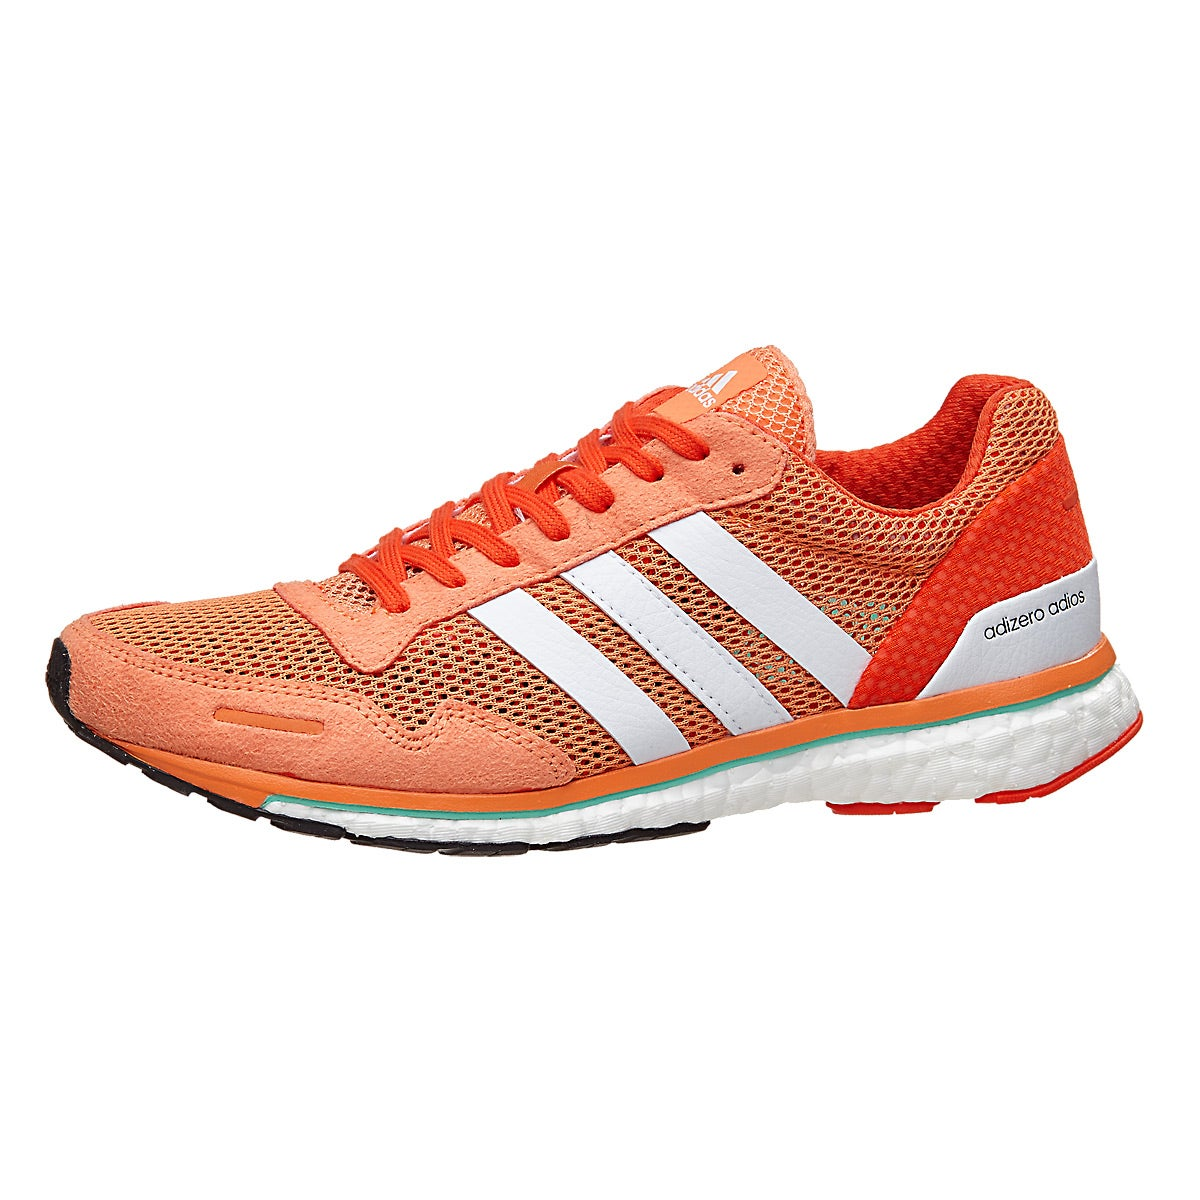 adidas adizero adios 3 Women s Shoes Easy Orange 360° View  2285f820c